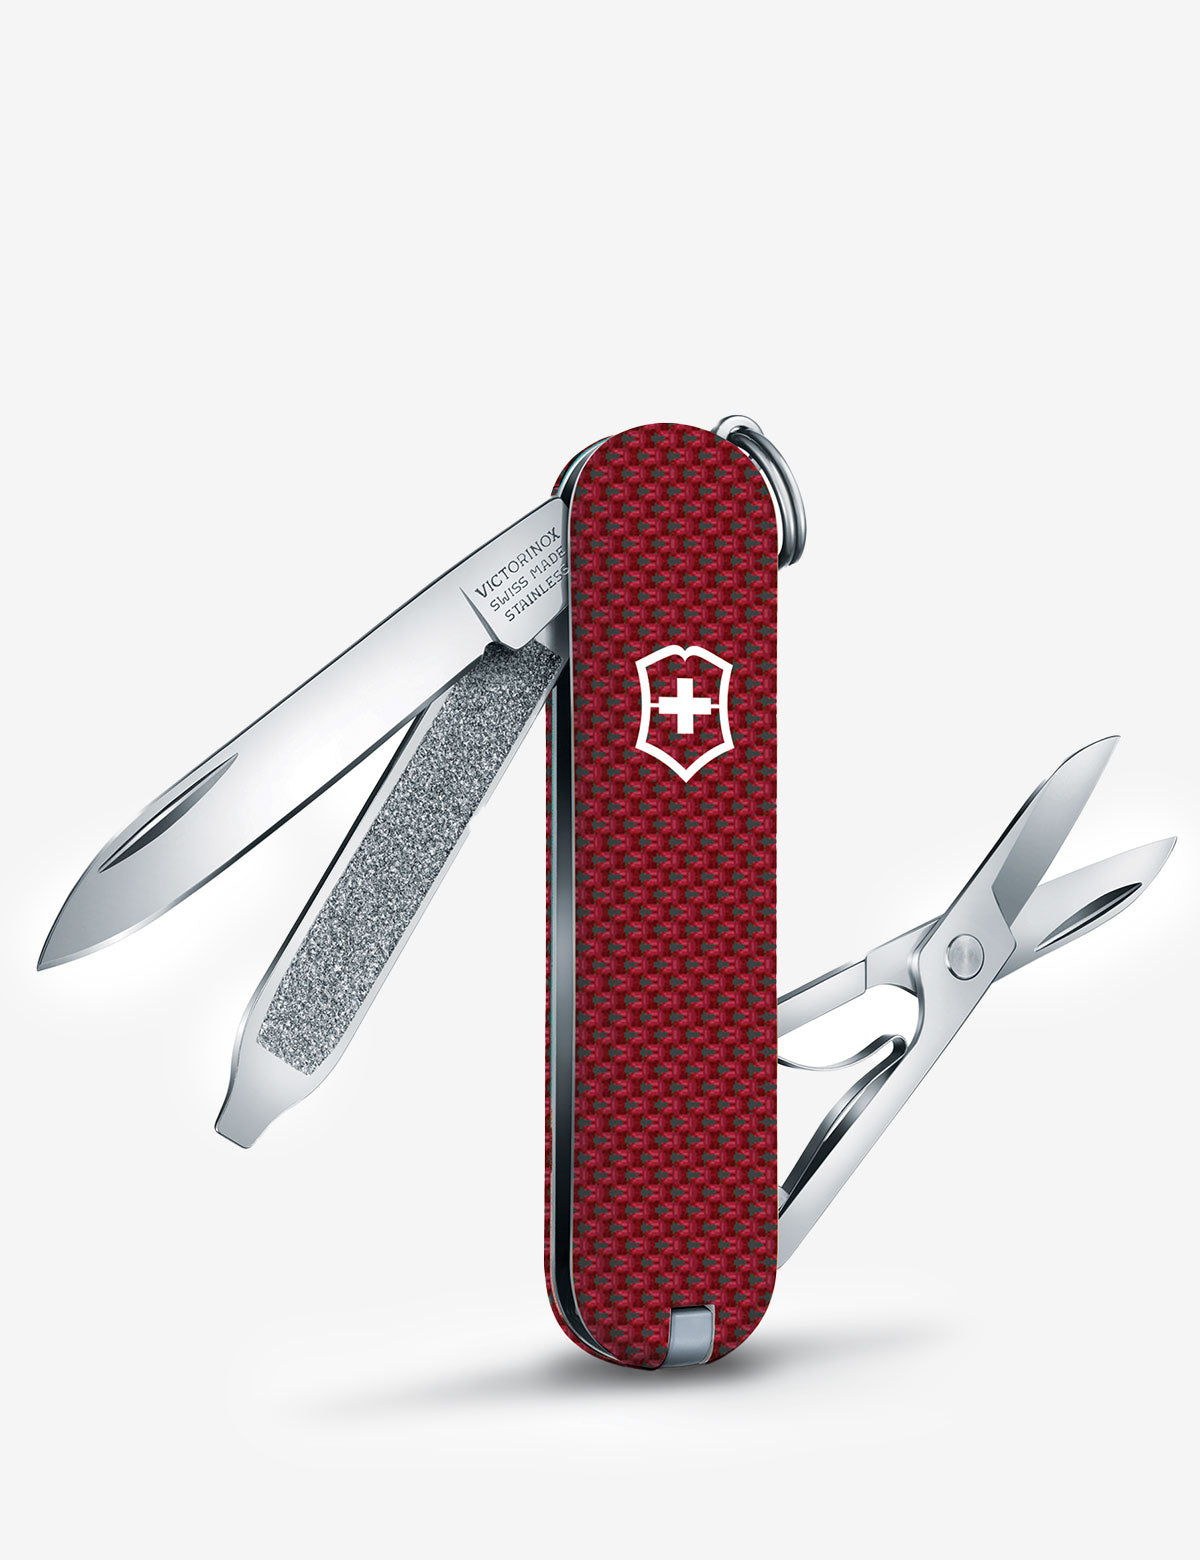 CLASSIC MASON 58MM SWISS ARMY POCKET KNIFE - U.S. Polo Assn.